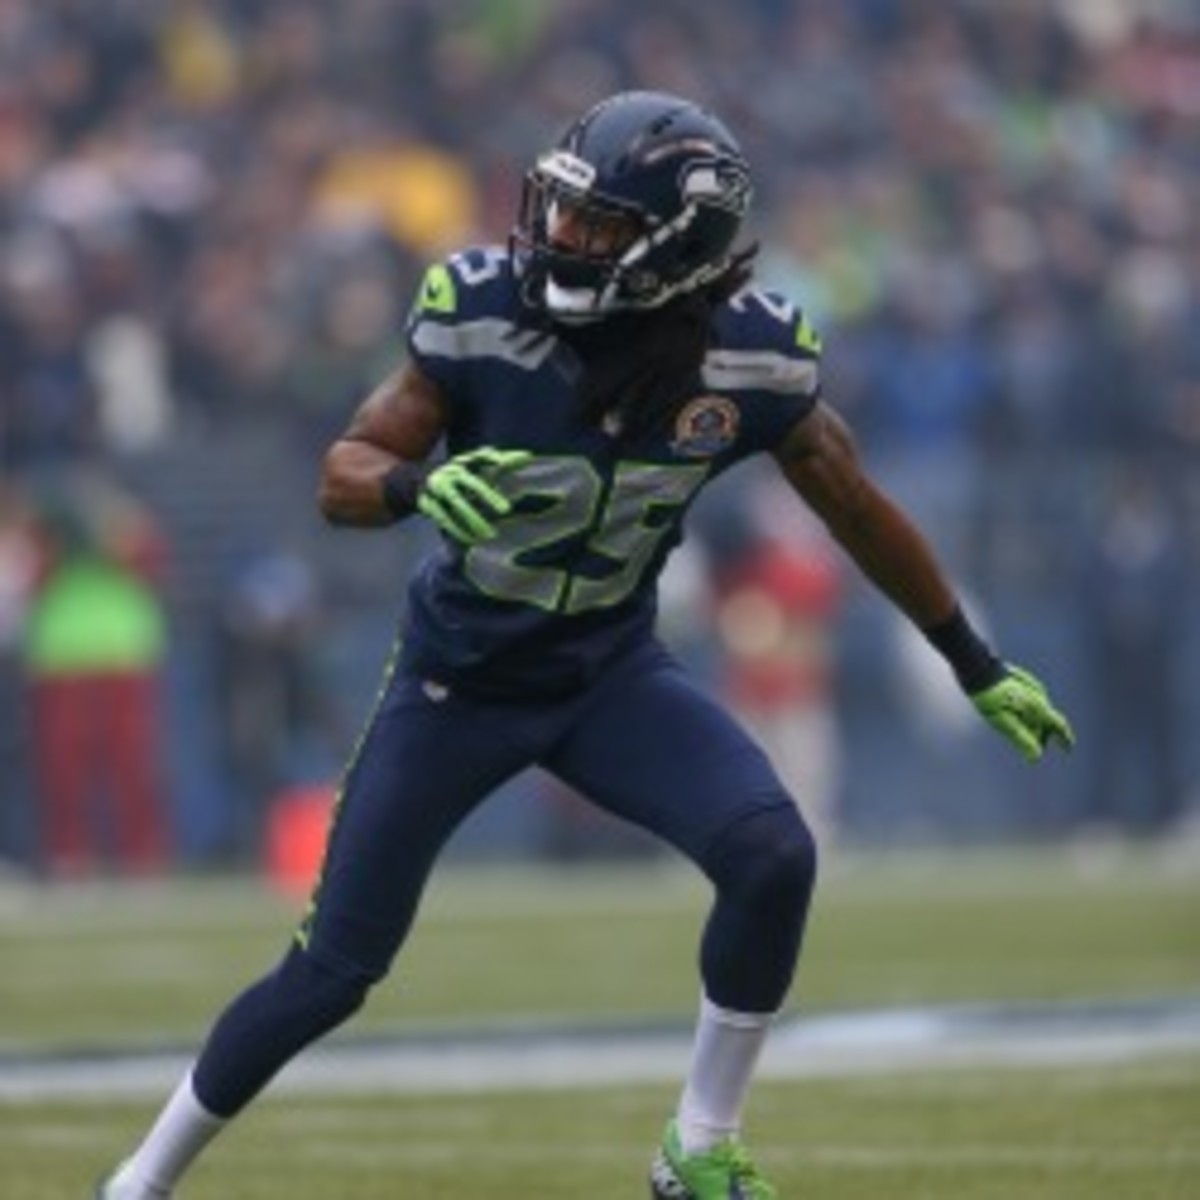 Seahawks cornerback Richard Sherman will have his appeal heard on Friday. (Otto Greule Jr/Getty Images)